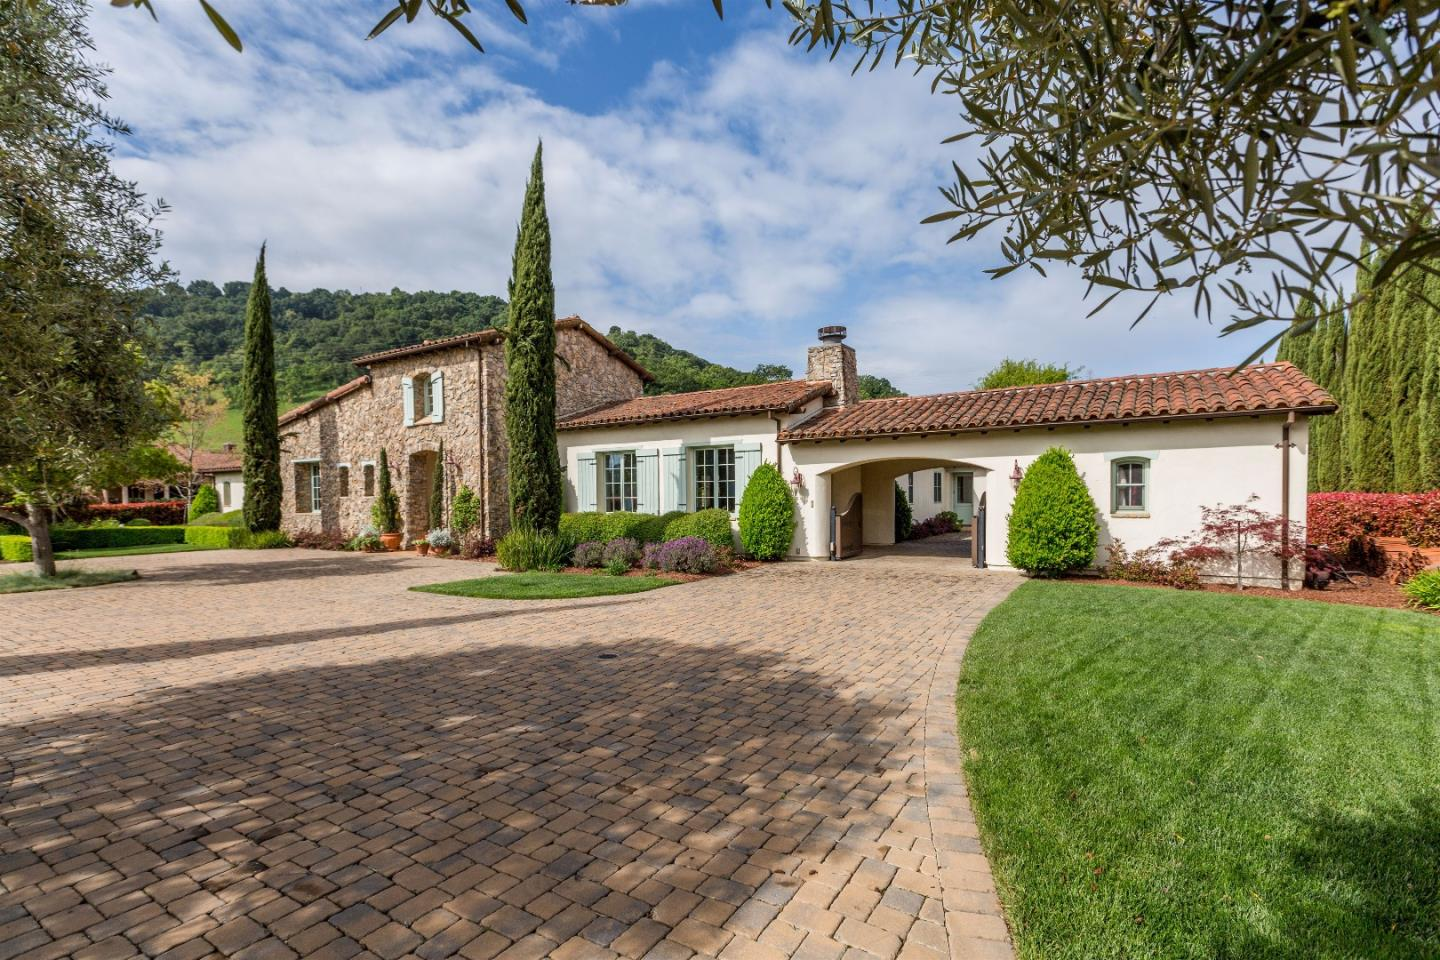 Single Family Home for Sale at 1455 Lakeview Court San Martin, California 95046 United States